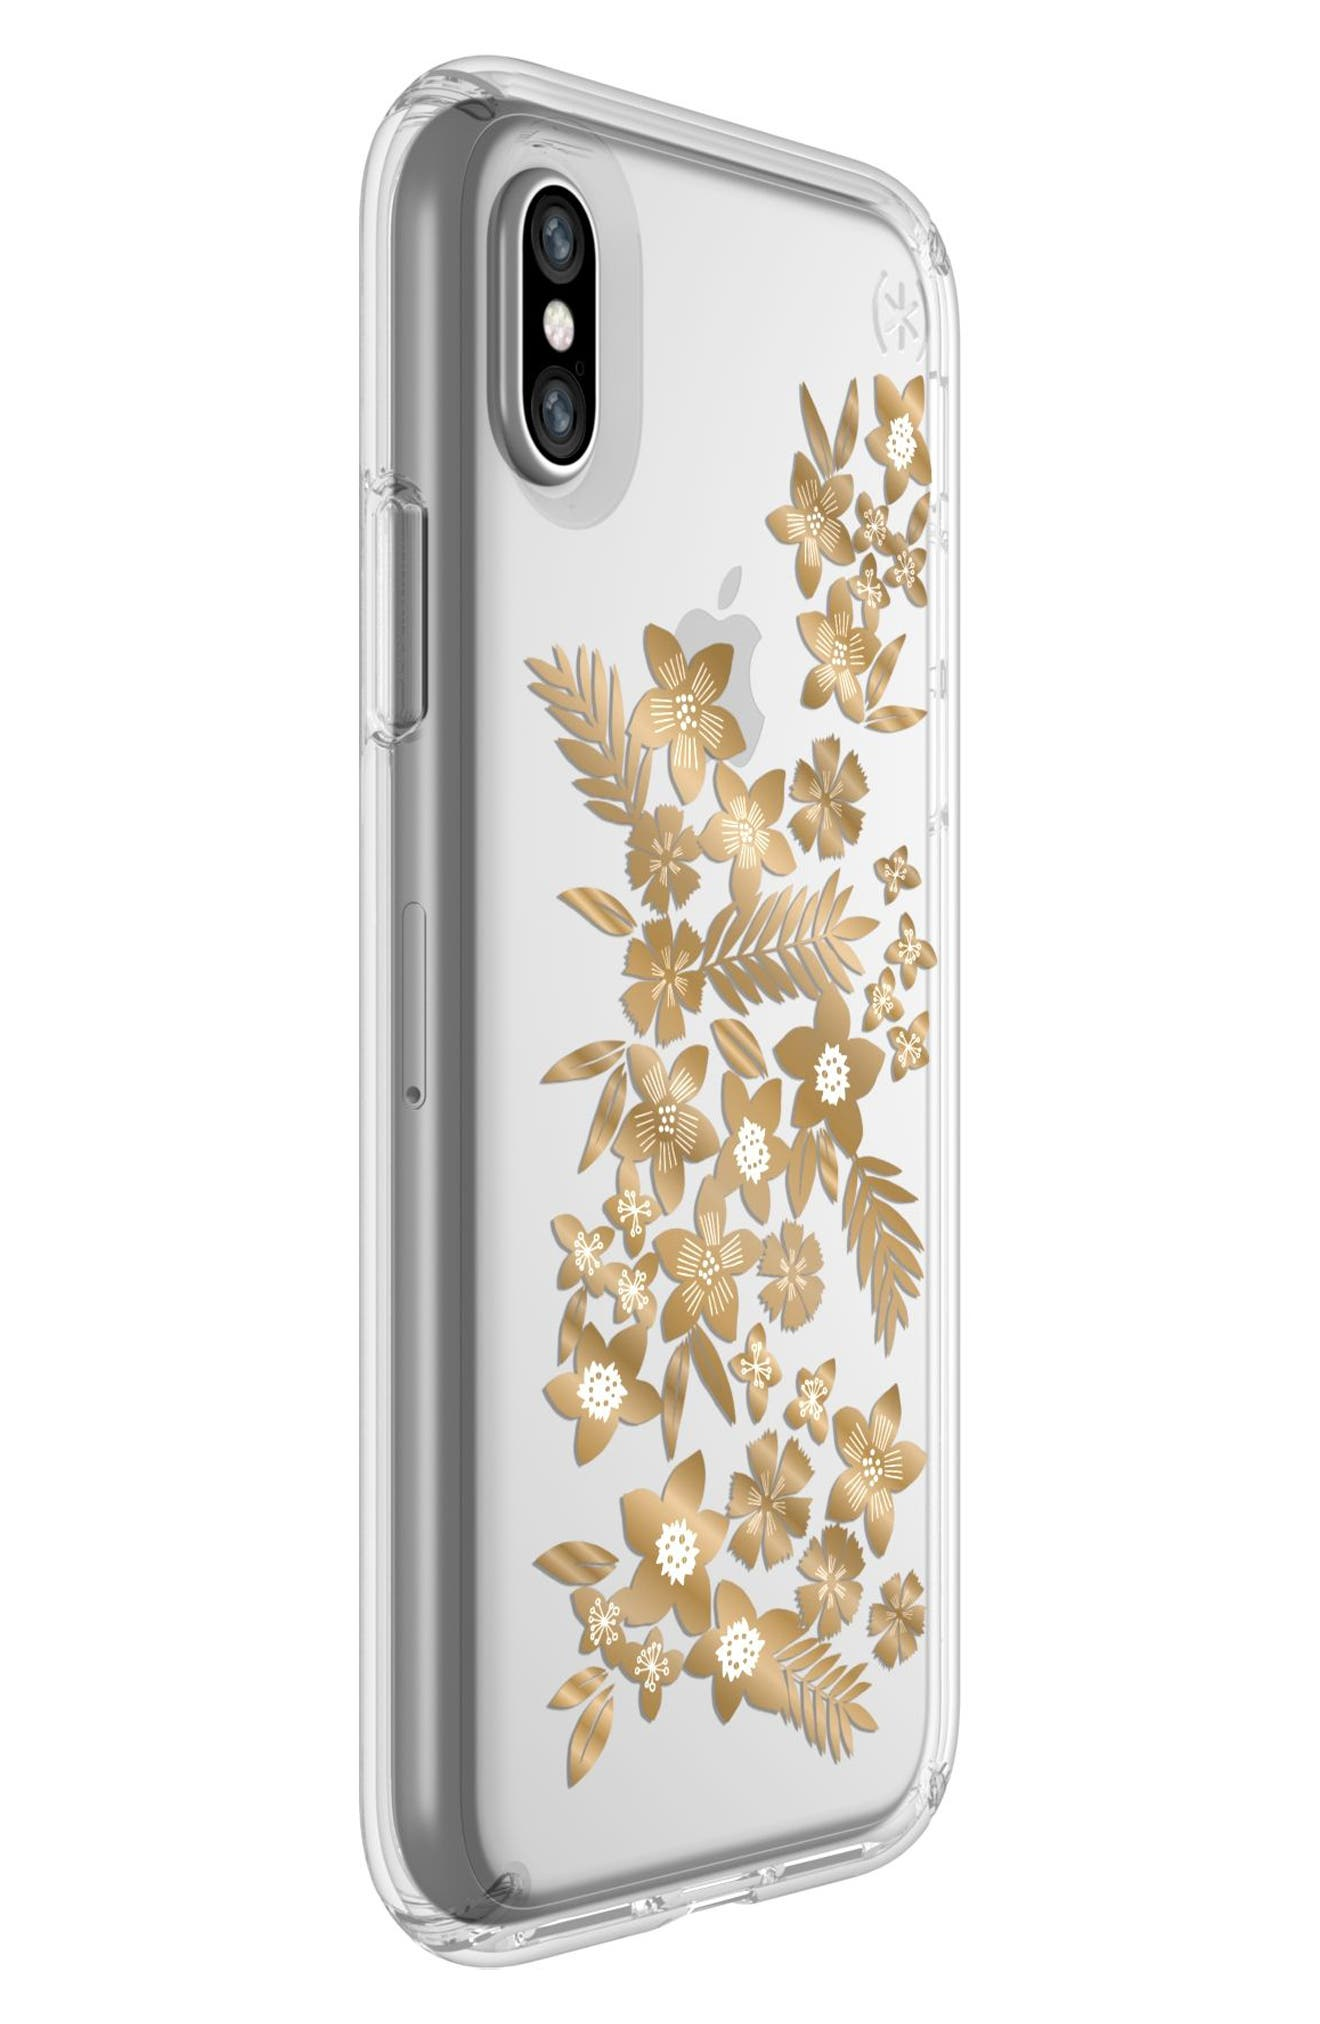 Shimmer Metallic Floral Transparent iPhone X & Xs Case,                             Alternate thumbnail 6, color,                             SHIMMER FLORAL METALLIC/ CLEAR